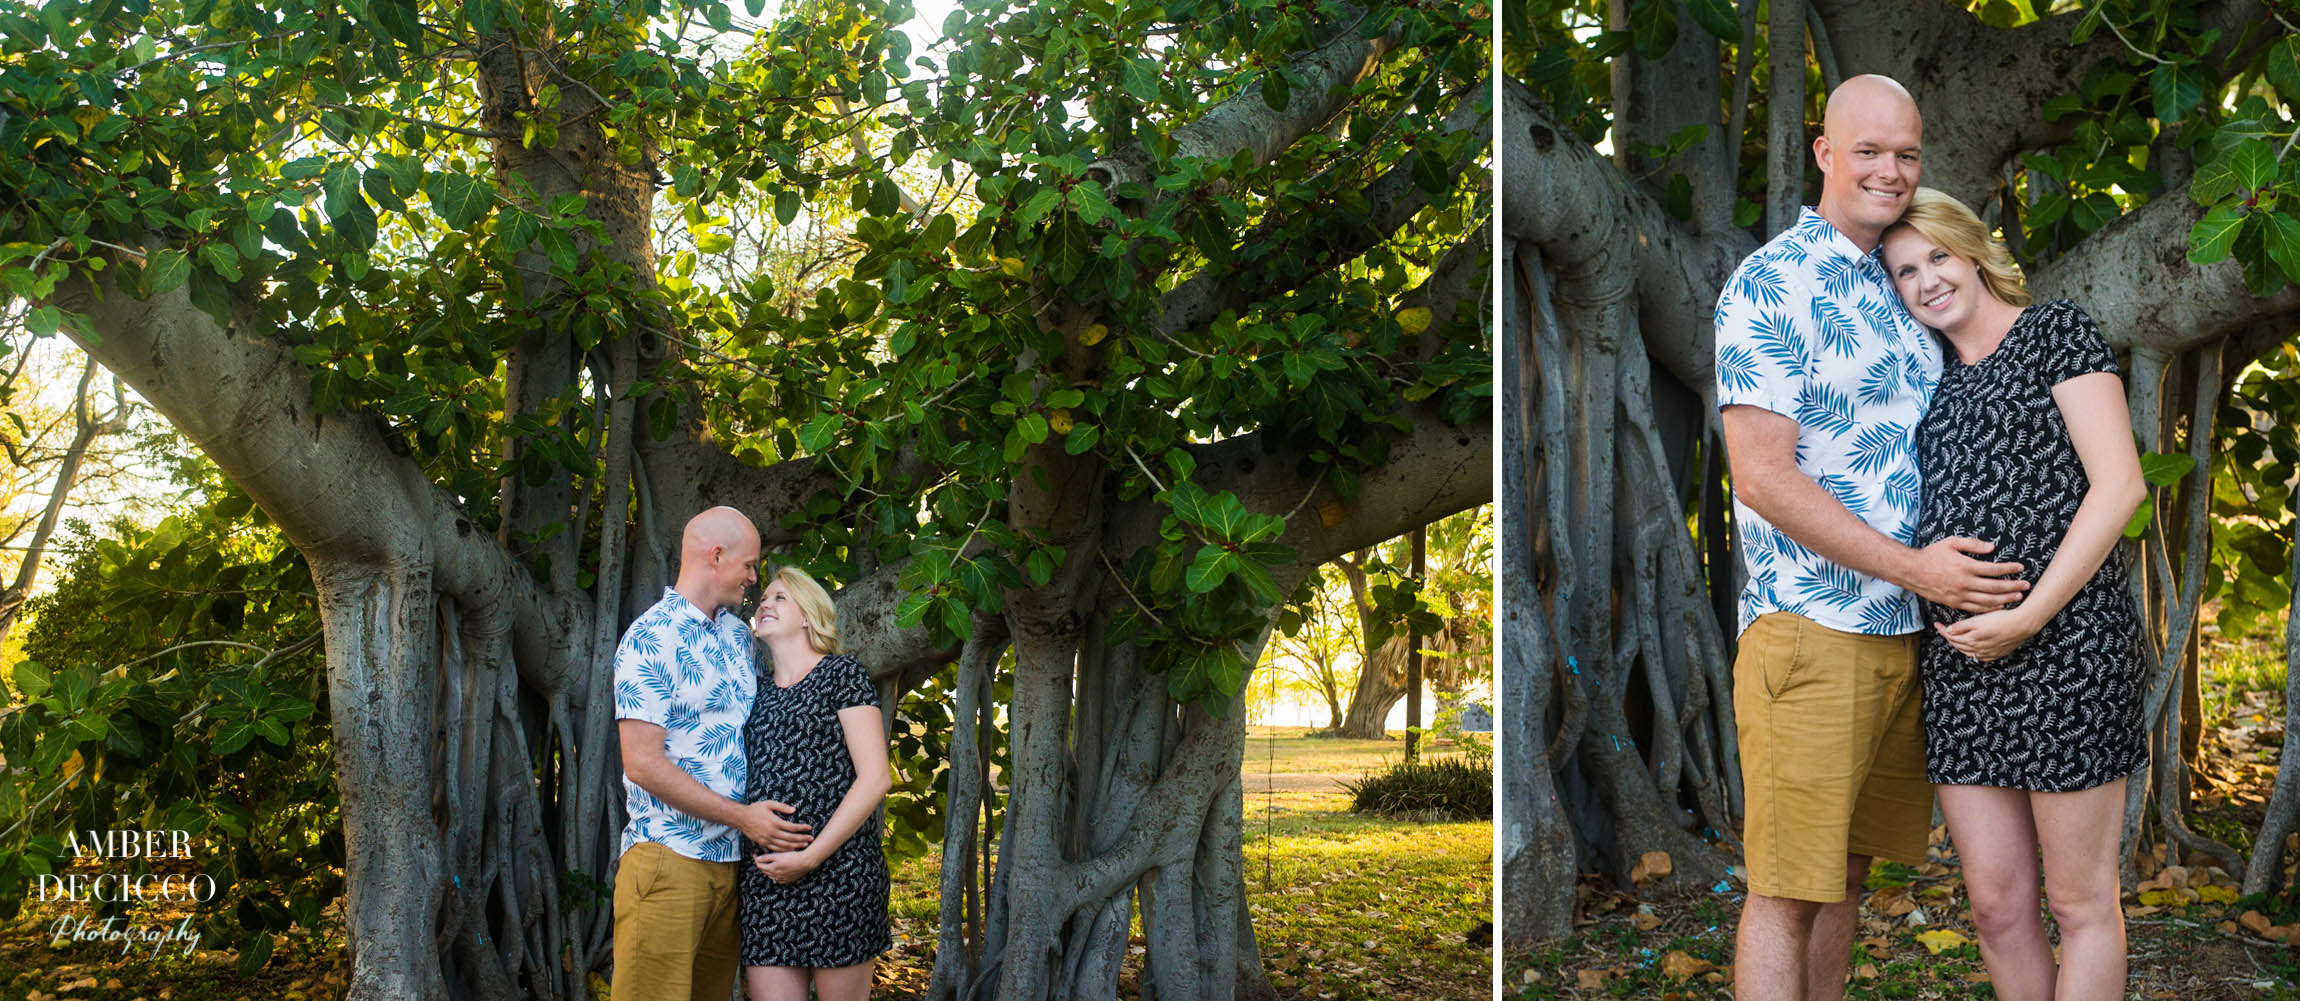 Banyan Tree Maternity Photograph